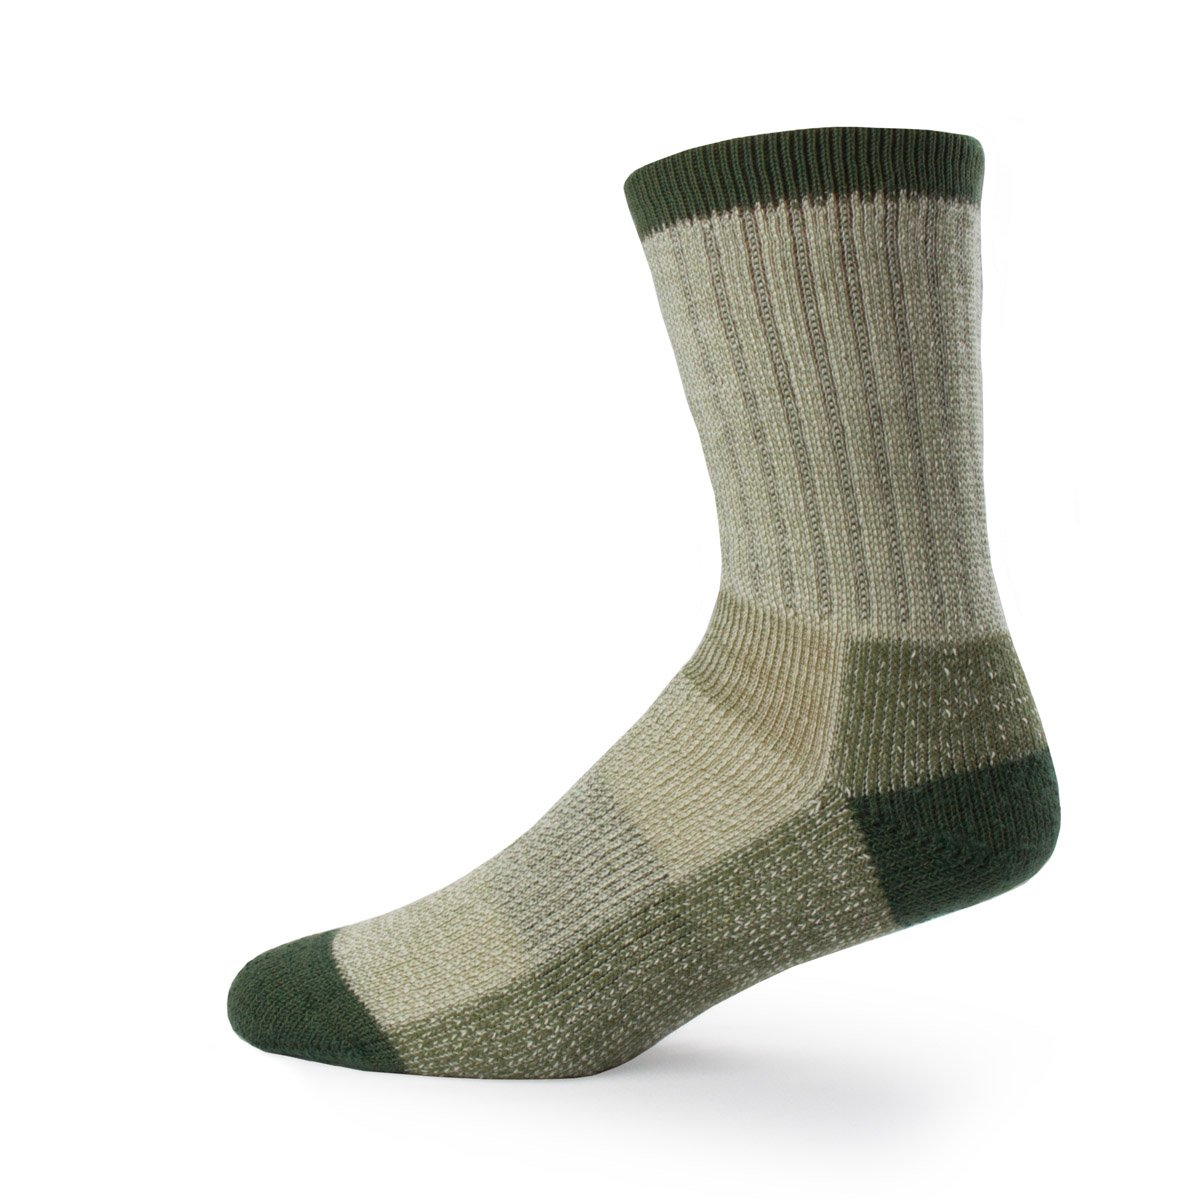 Minus33 Merino Wool Day Hiker Sock, Olive, Medium by Minus33 Merino Wool